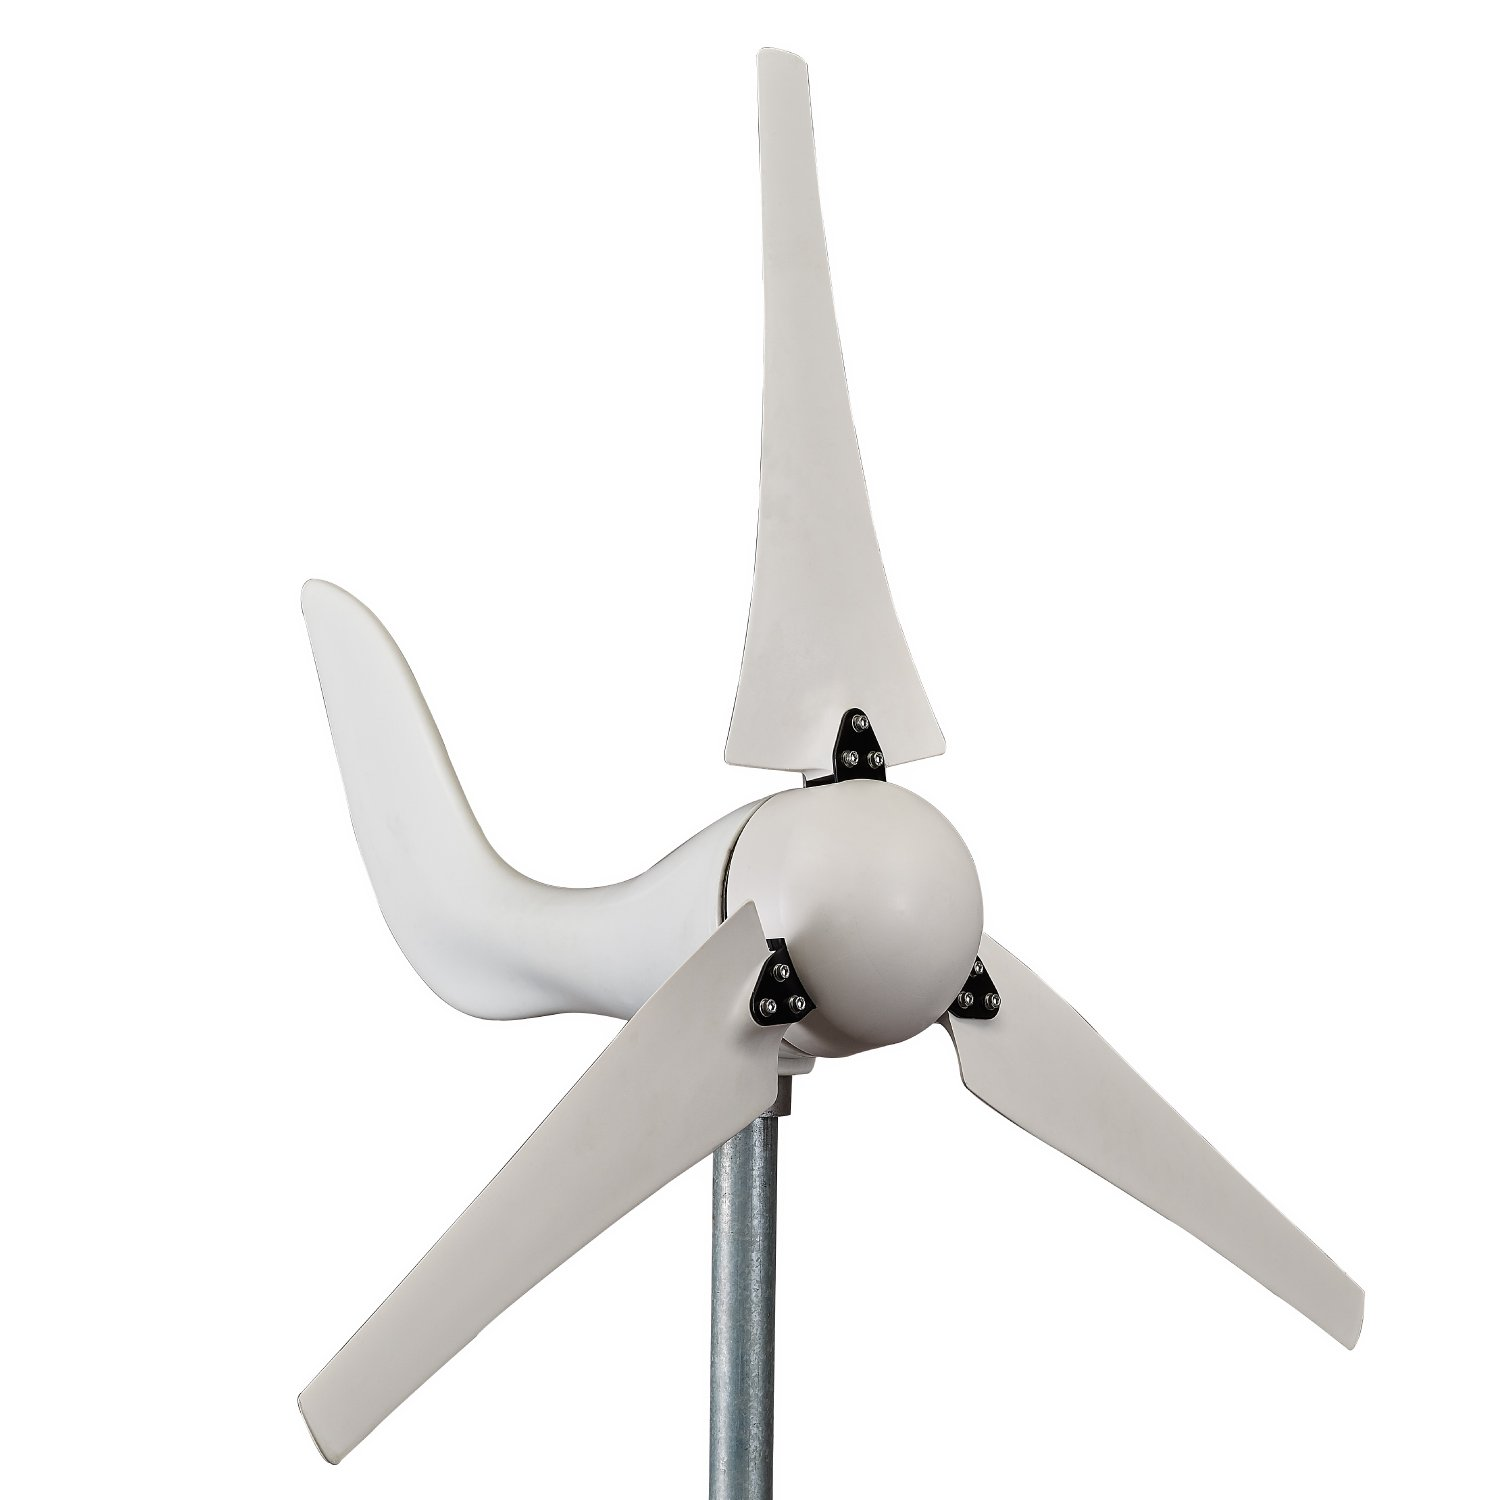 Windmill (DB-400) 400W 12V Wind Turbine Generator kit by WindMill